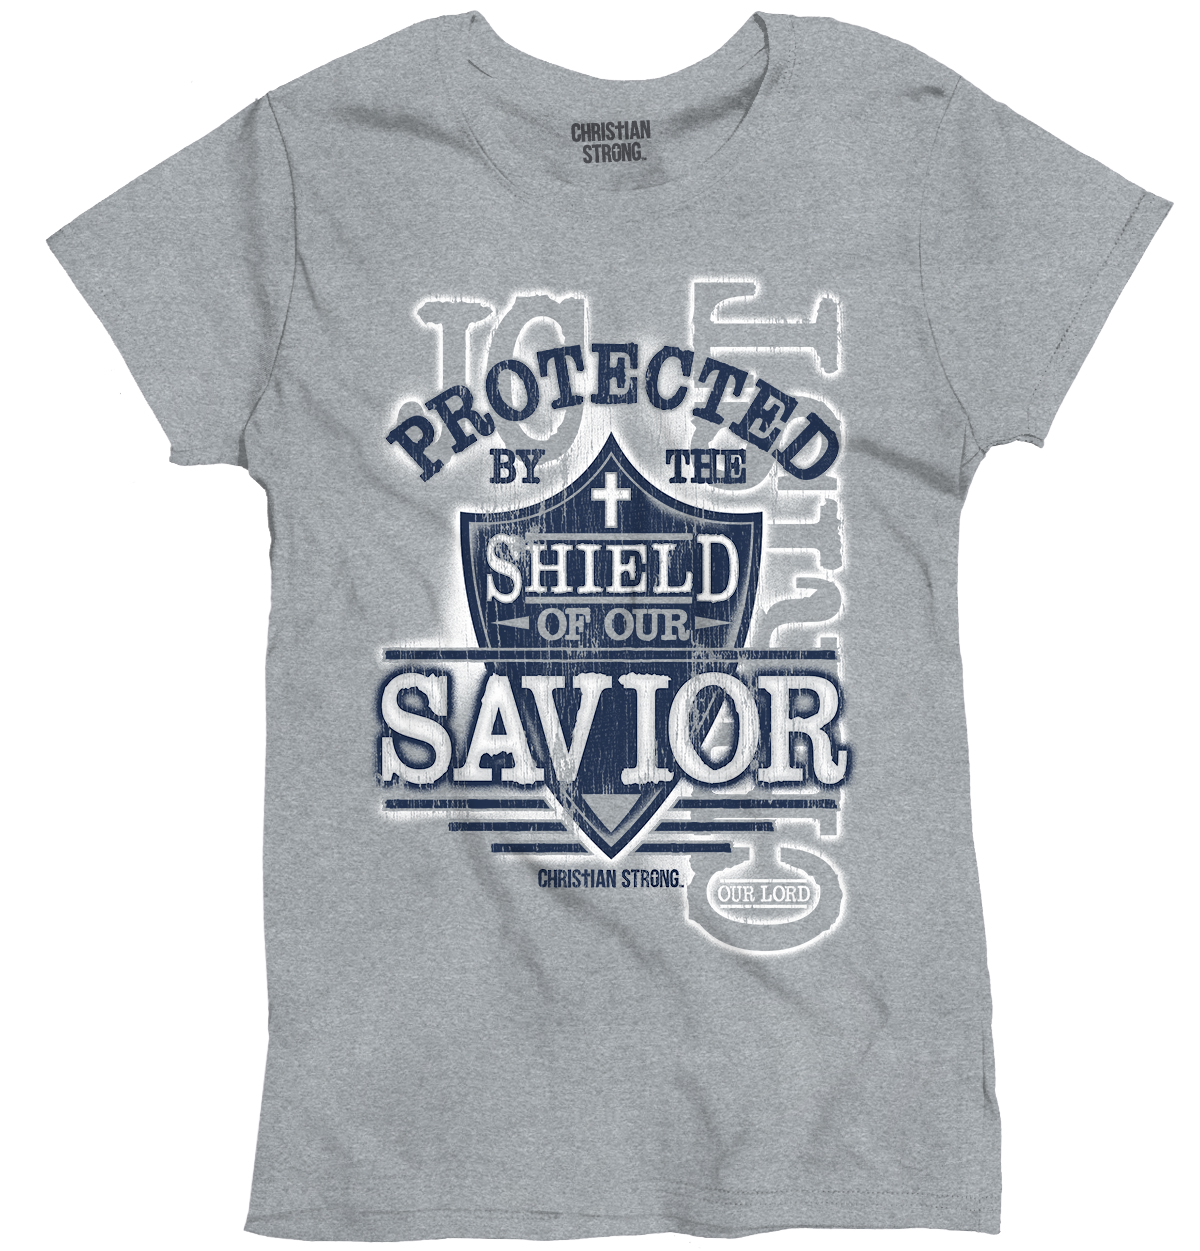 Christian Religious T Shirt Protected By The Shield Of Our Savior Womens Tee by Christian Strong